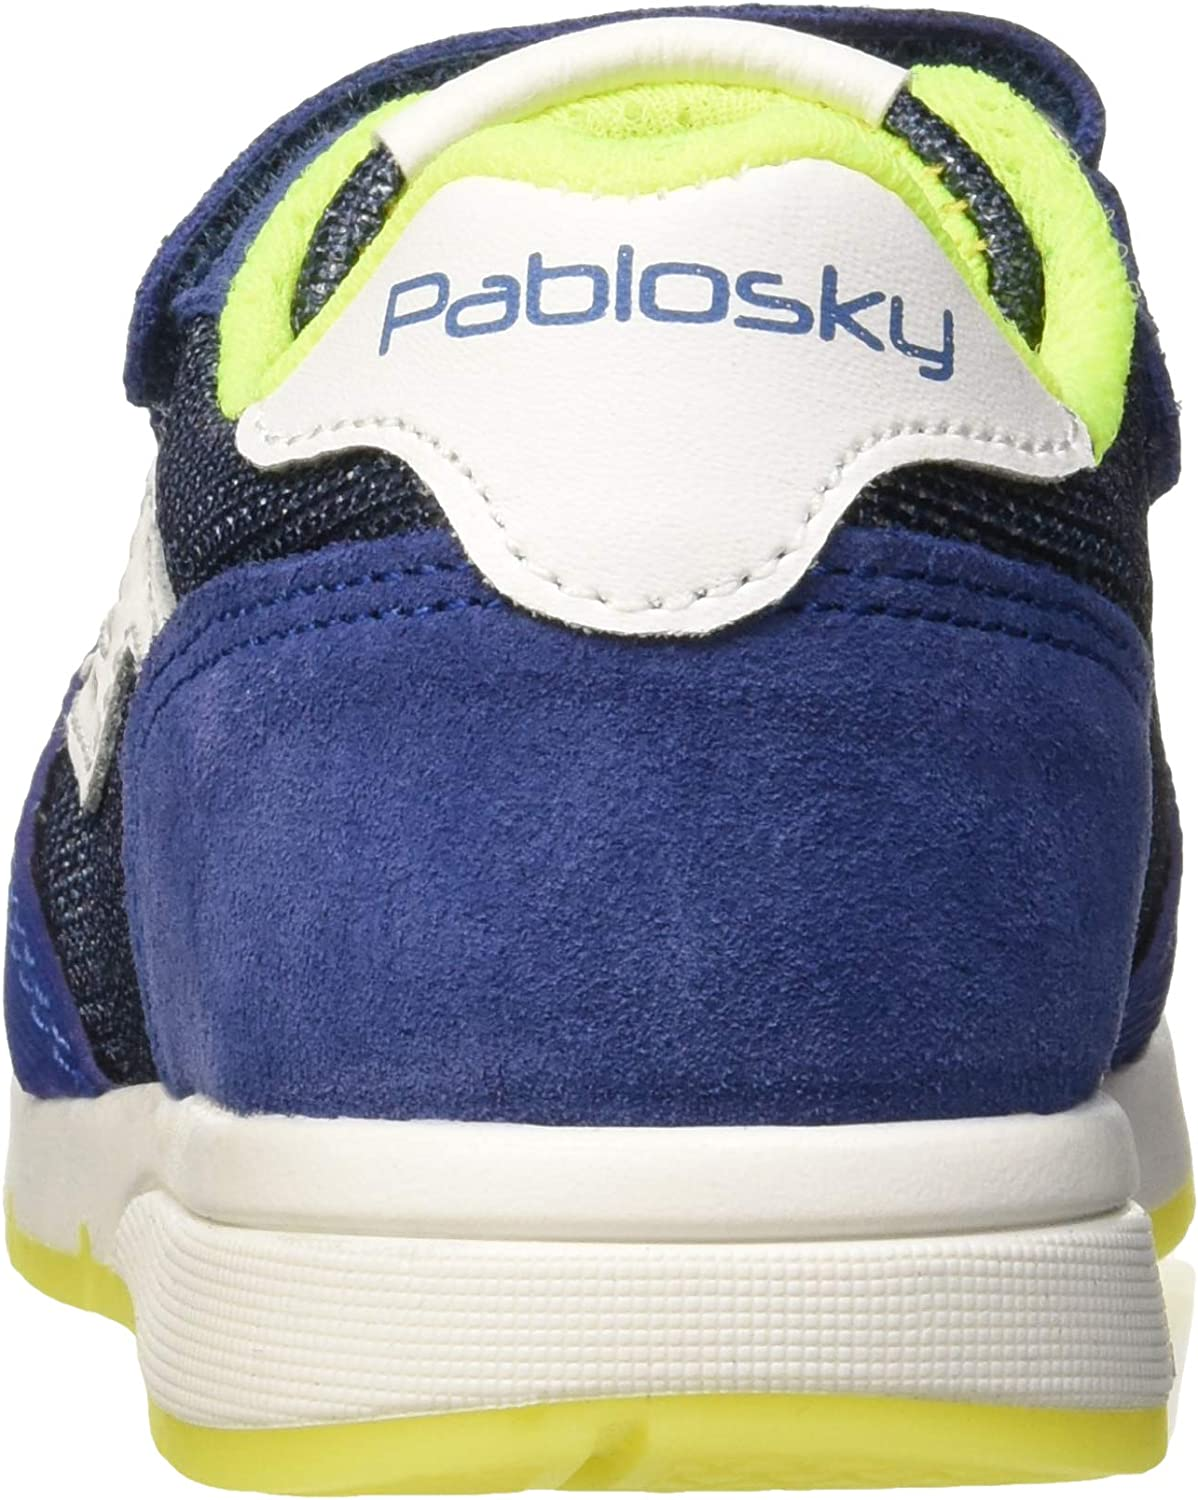 Pablosky Boys/' 274549 Slip On Trainers